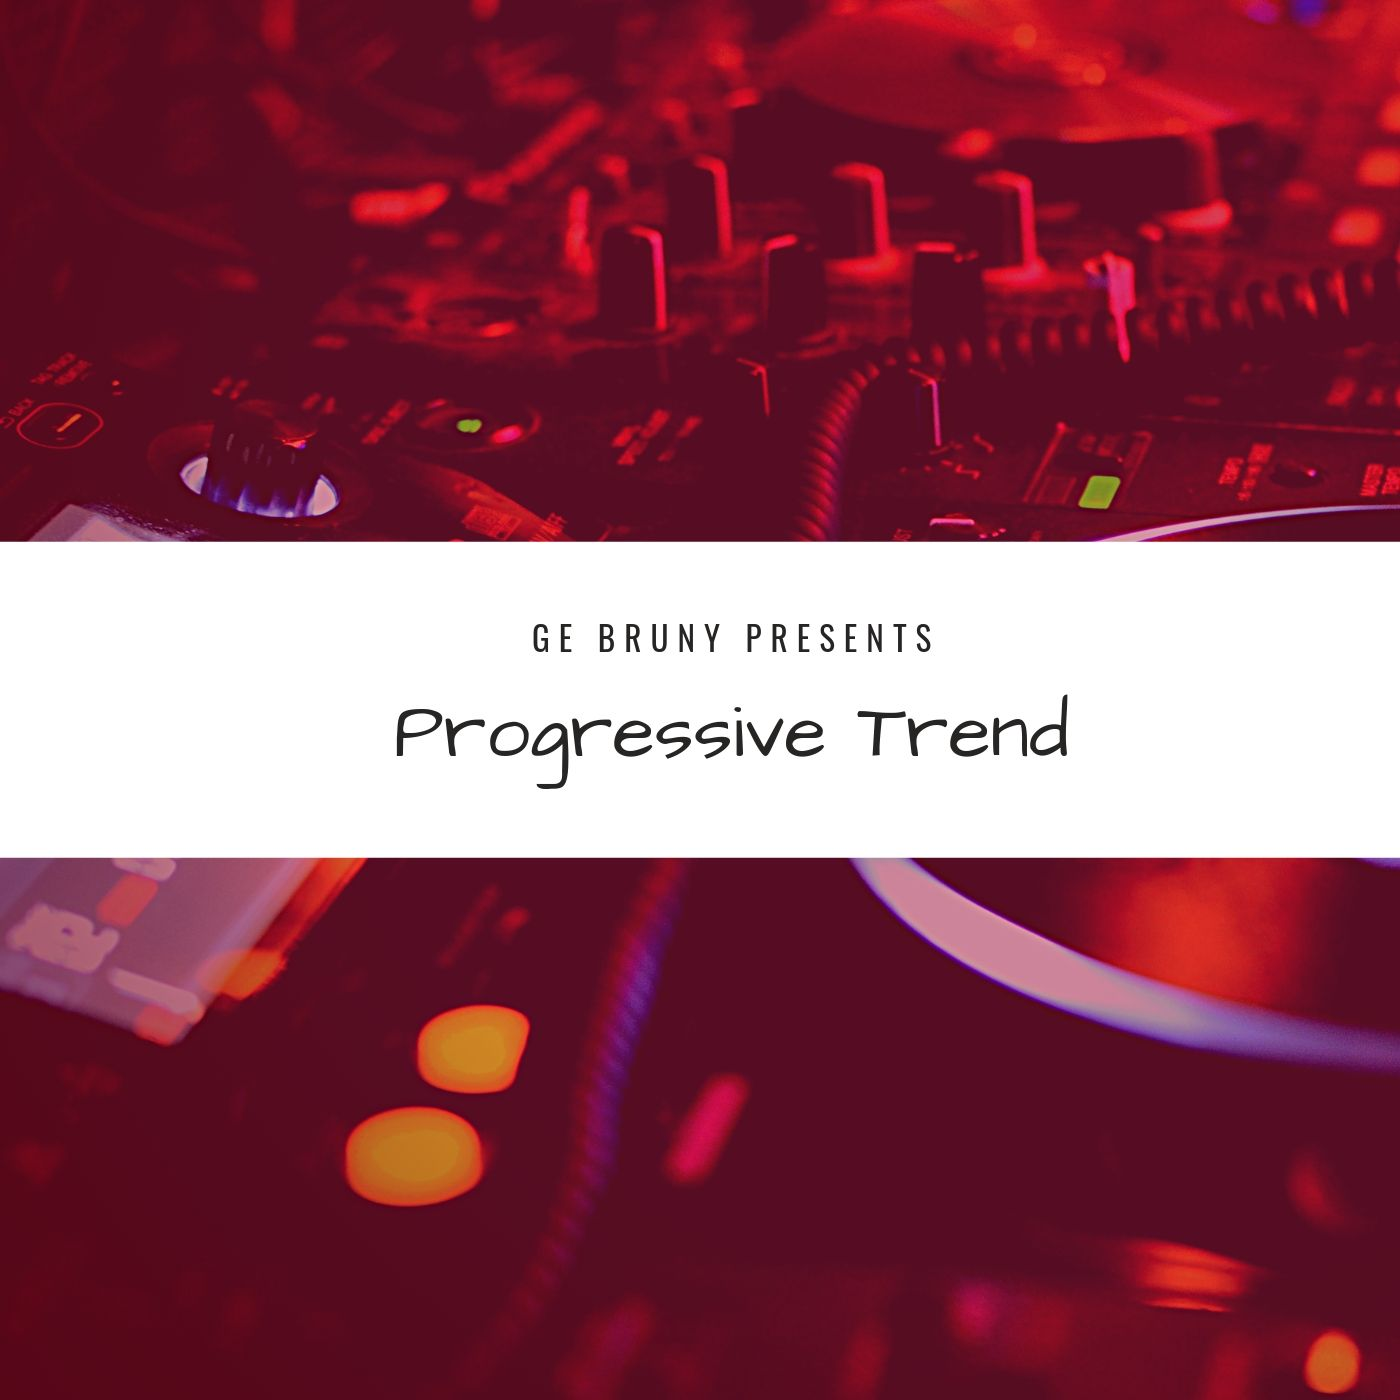 Ge Bruny presents: Progressive Trend :: Grand Opening on TM Radio (aired on September 28th, 2019) banner logo